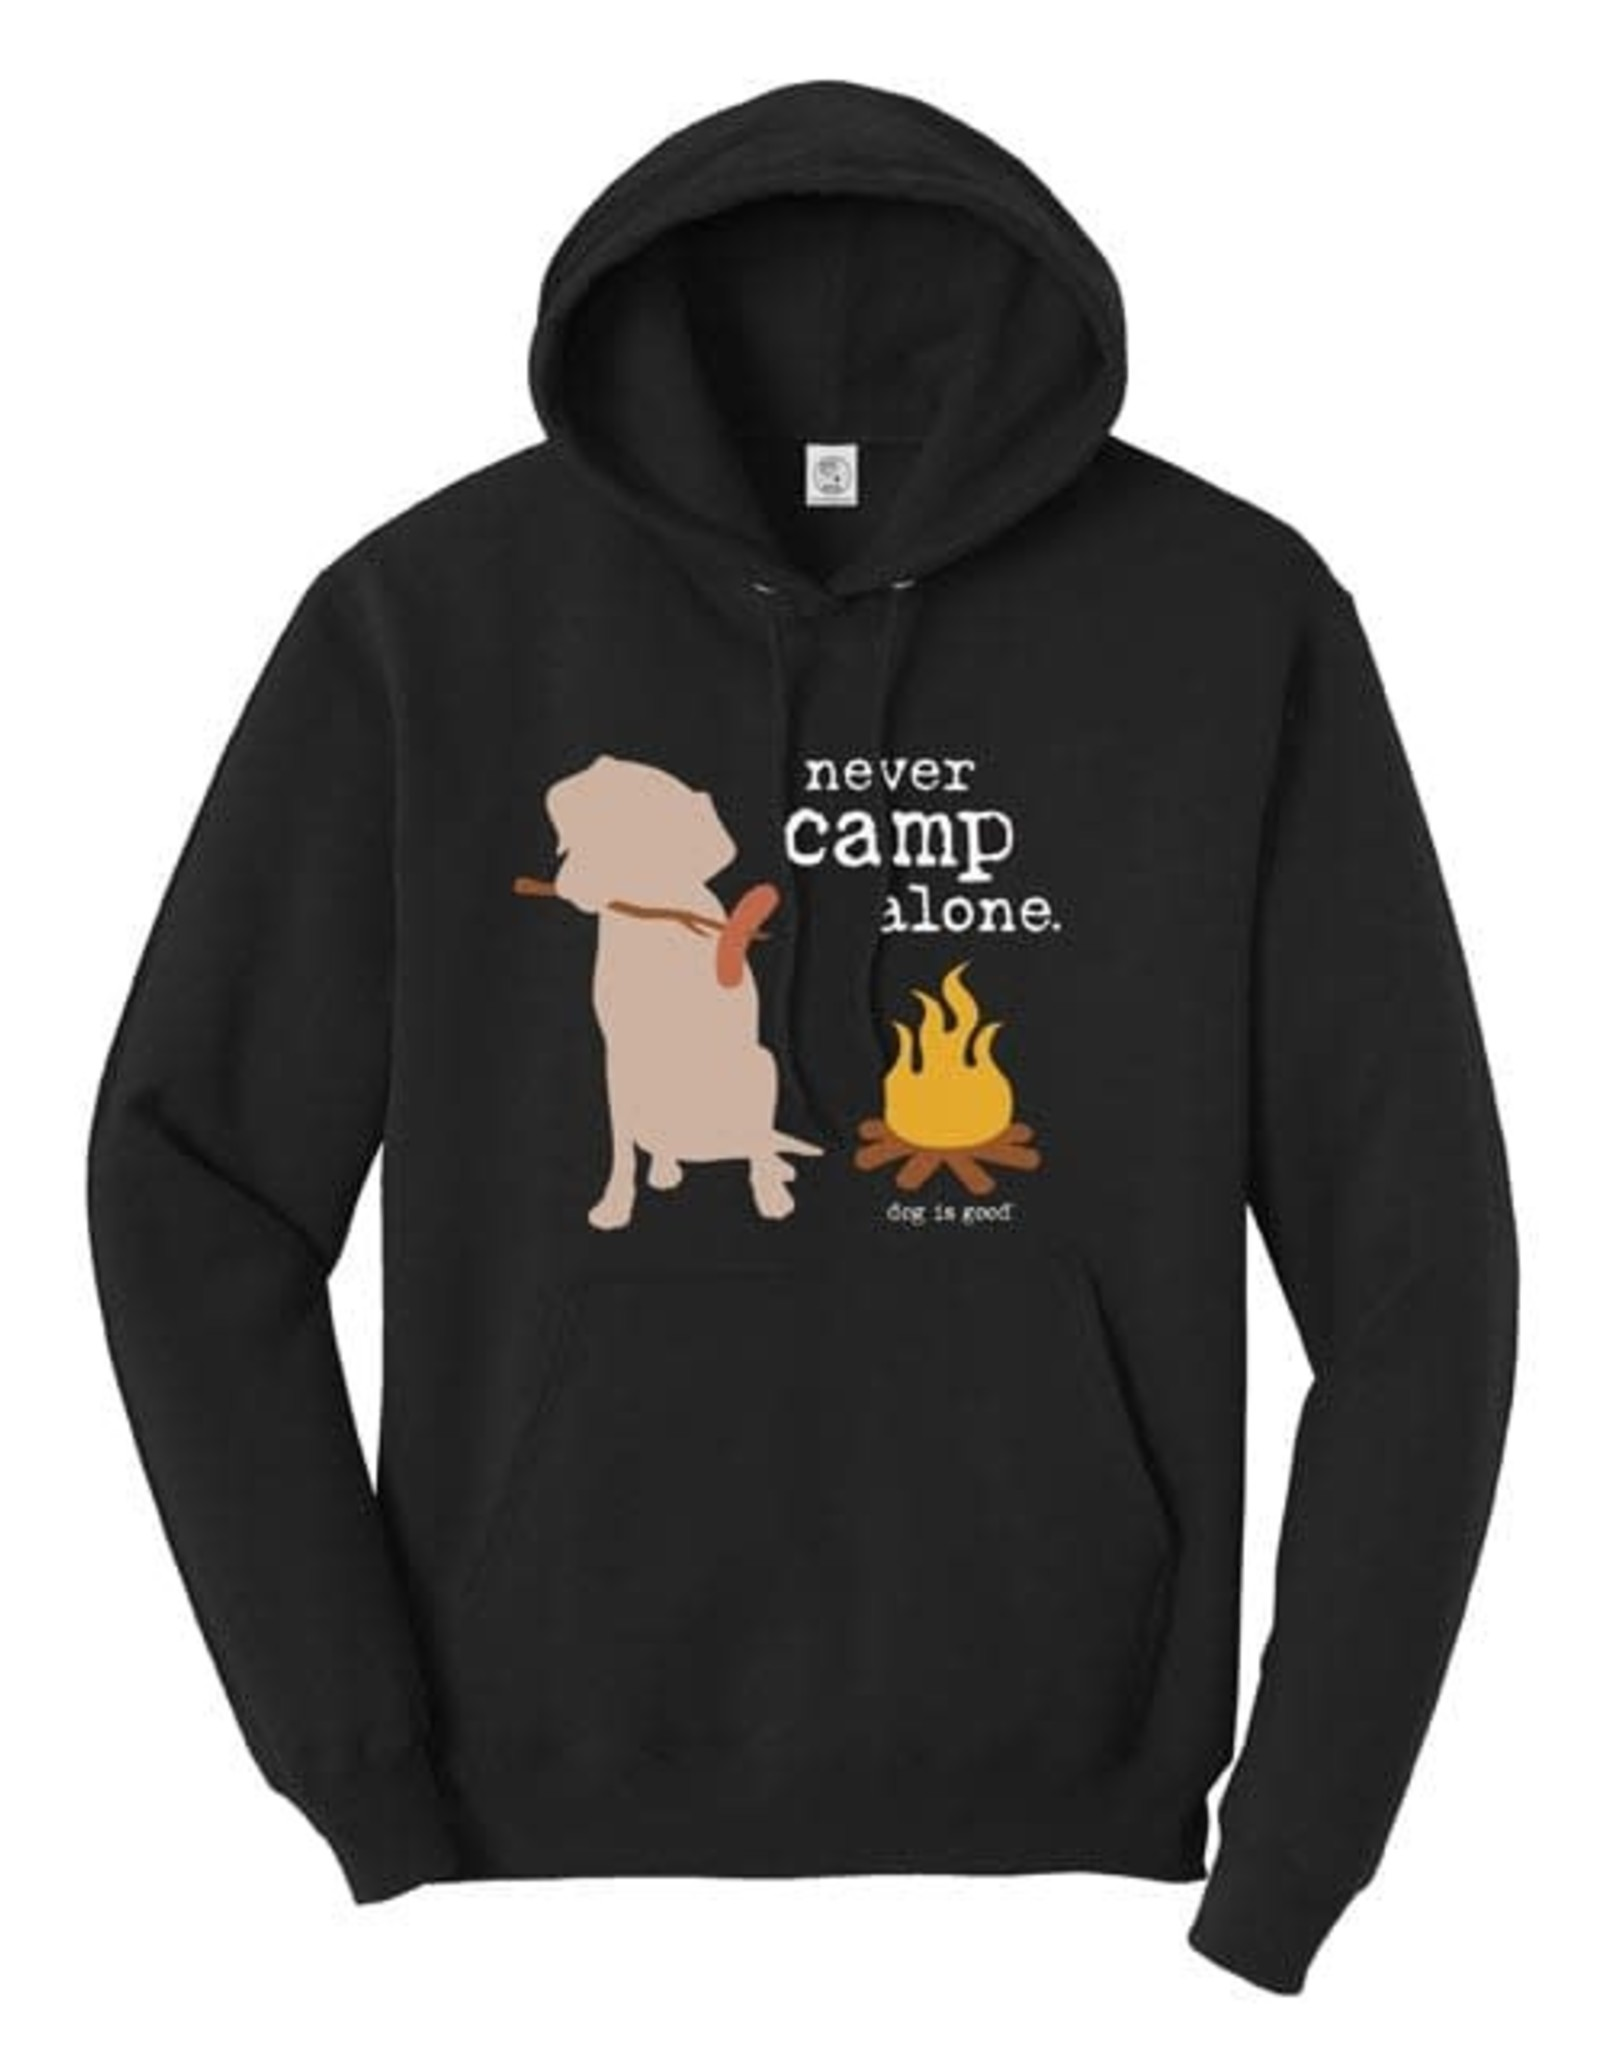 Dog is Good Clothing - Medium Hoodie Never Camp Alone